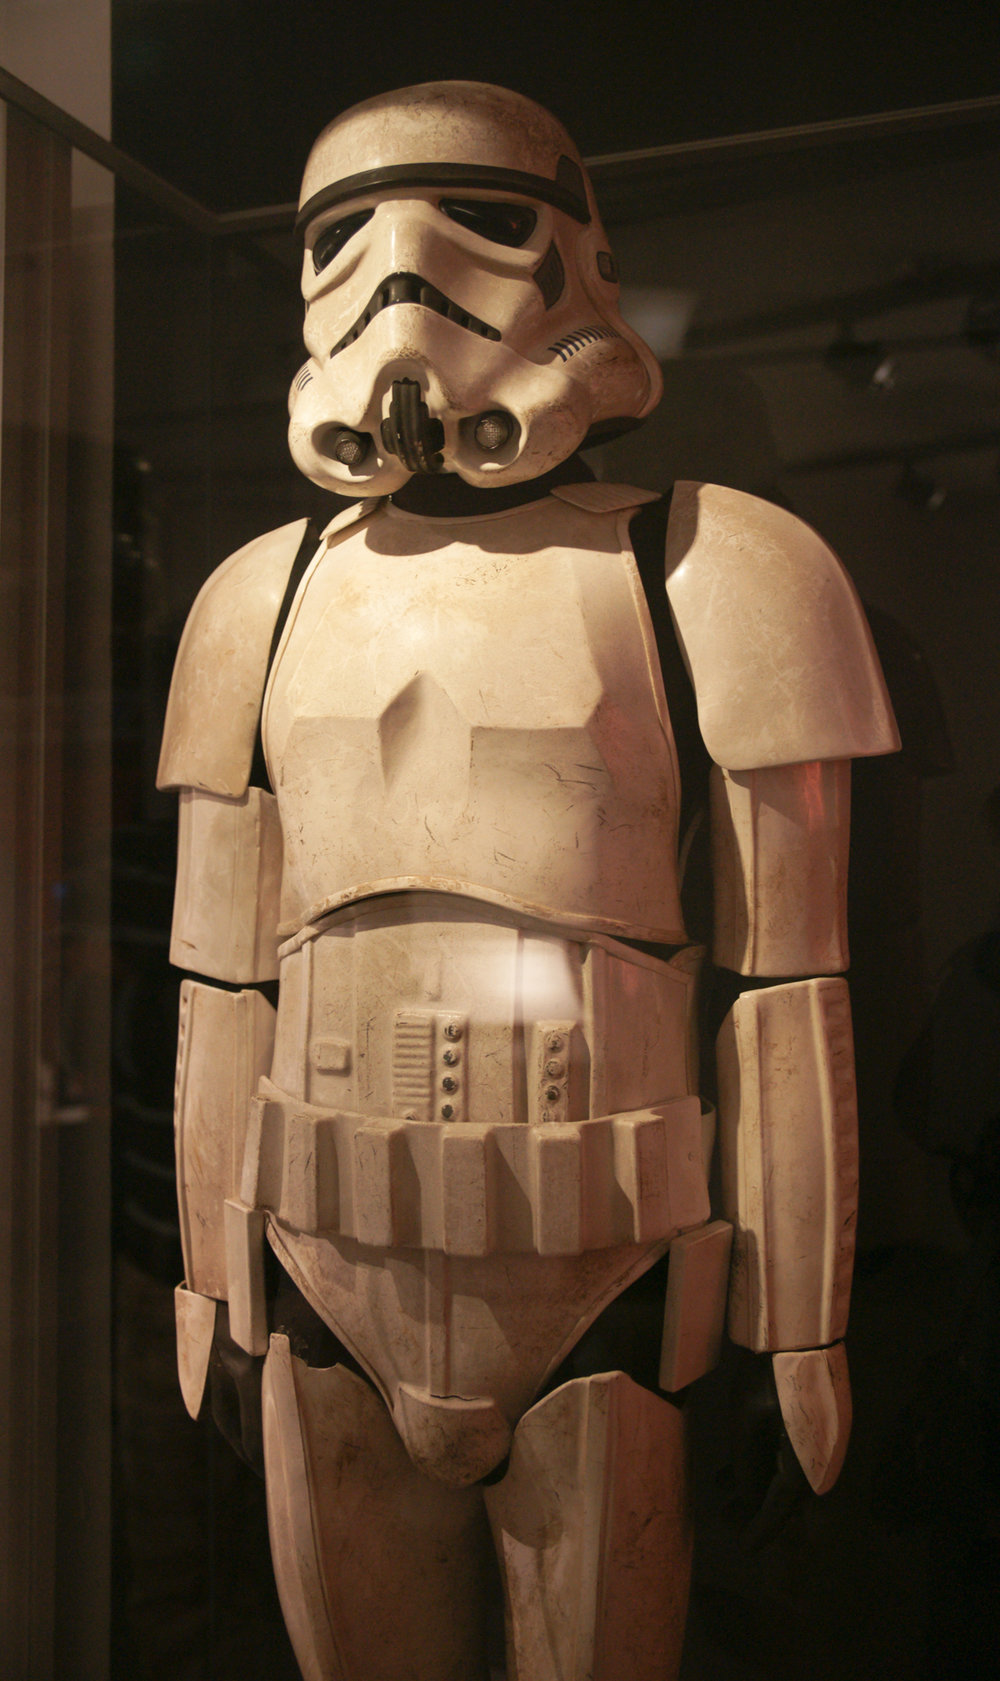 Stormtrooper at Star Wars Exhibit